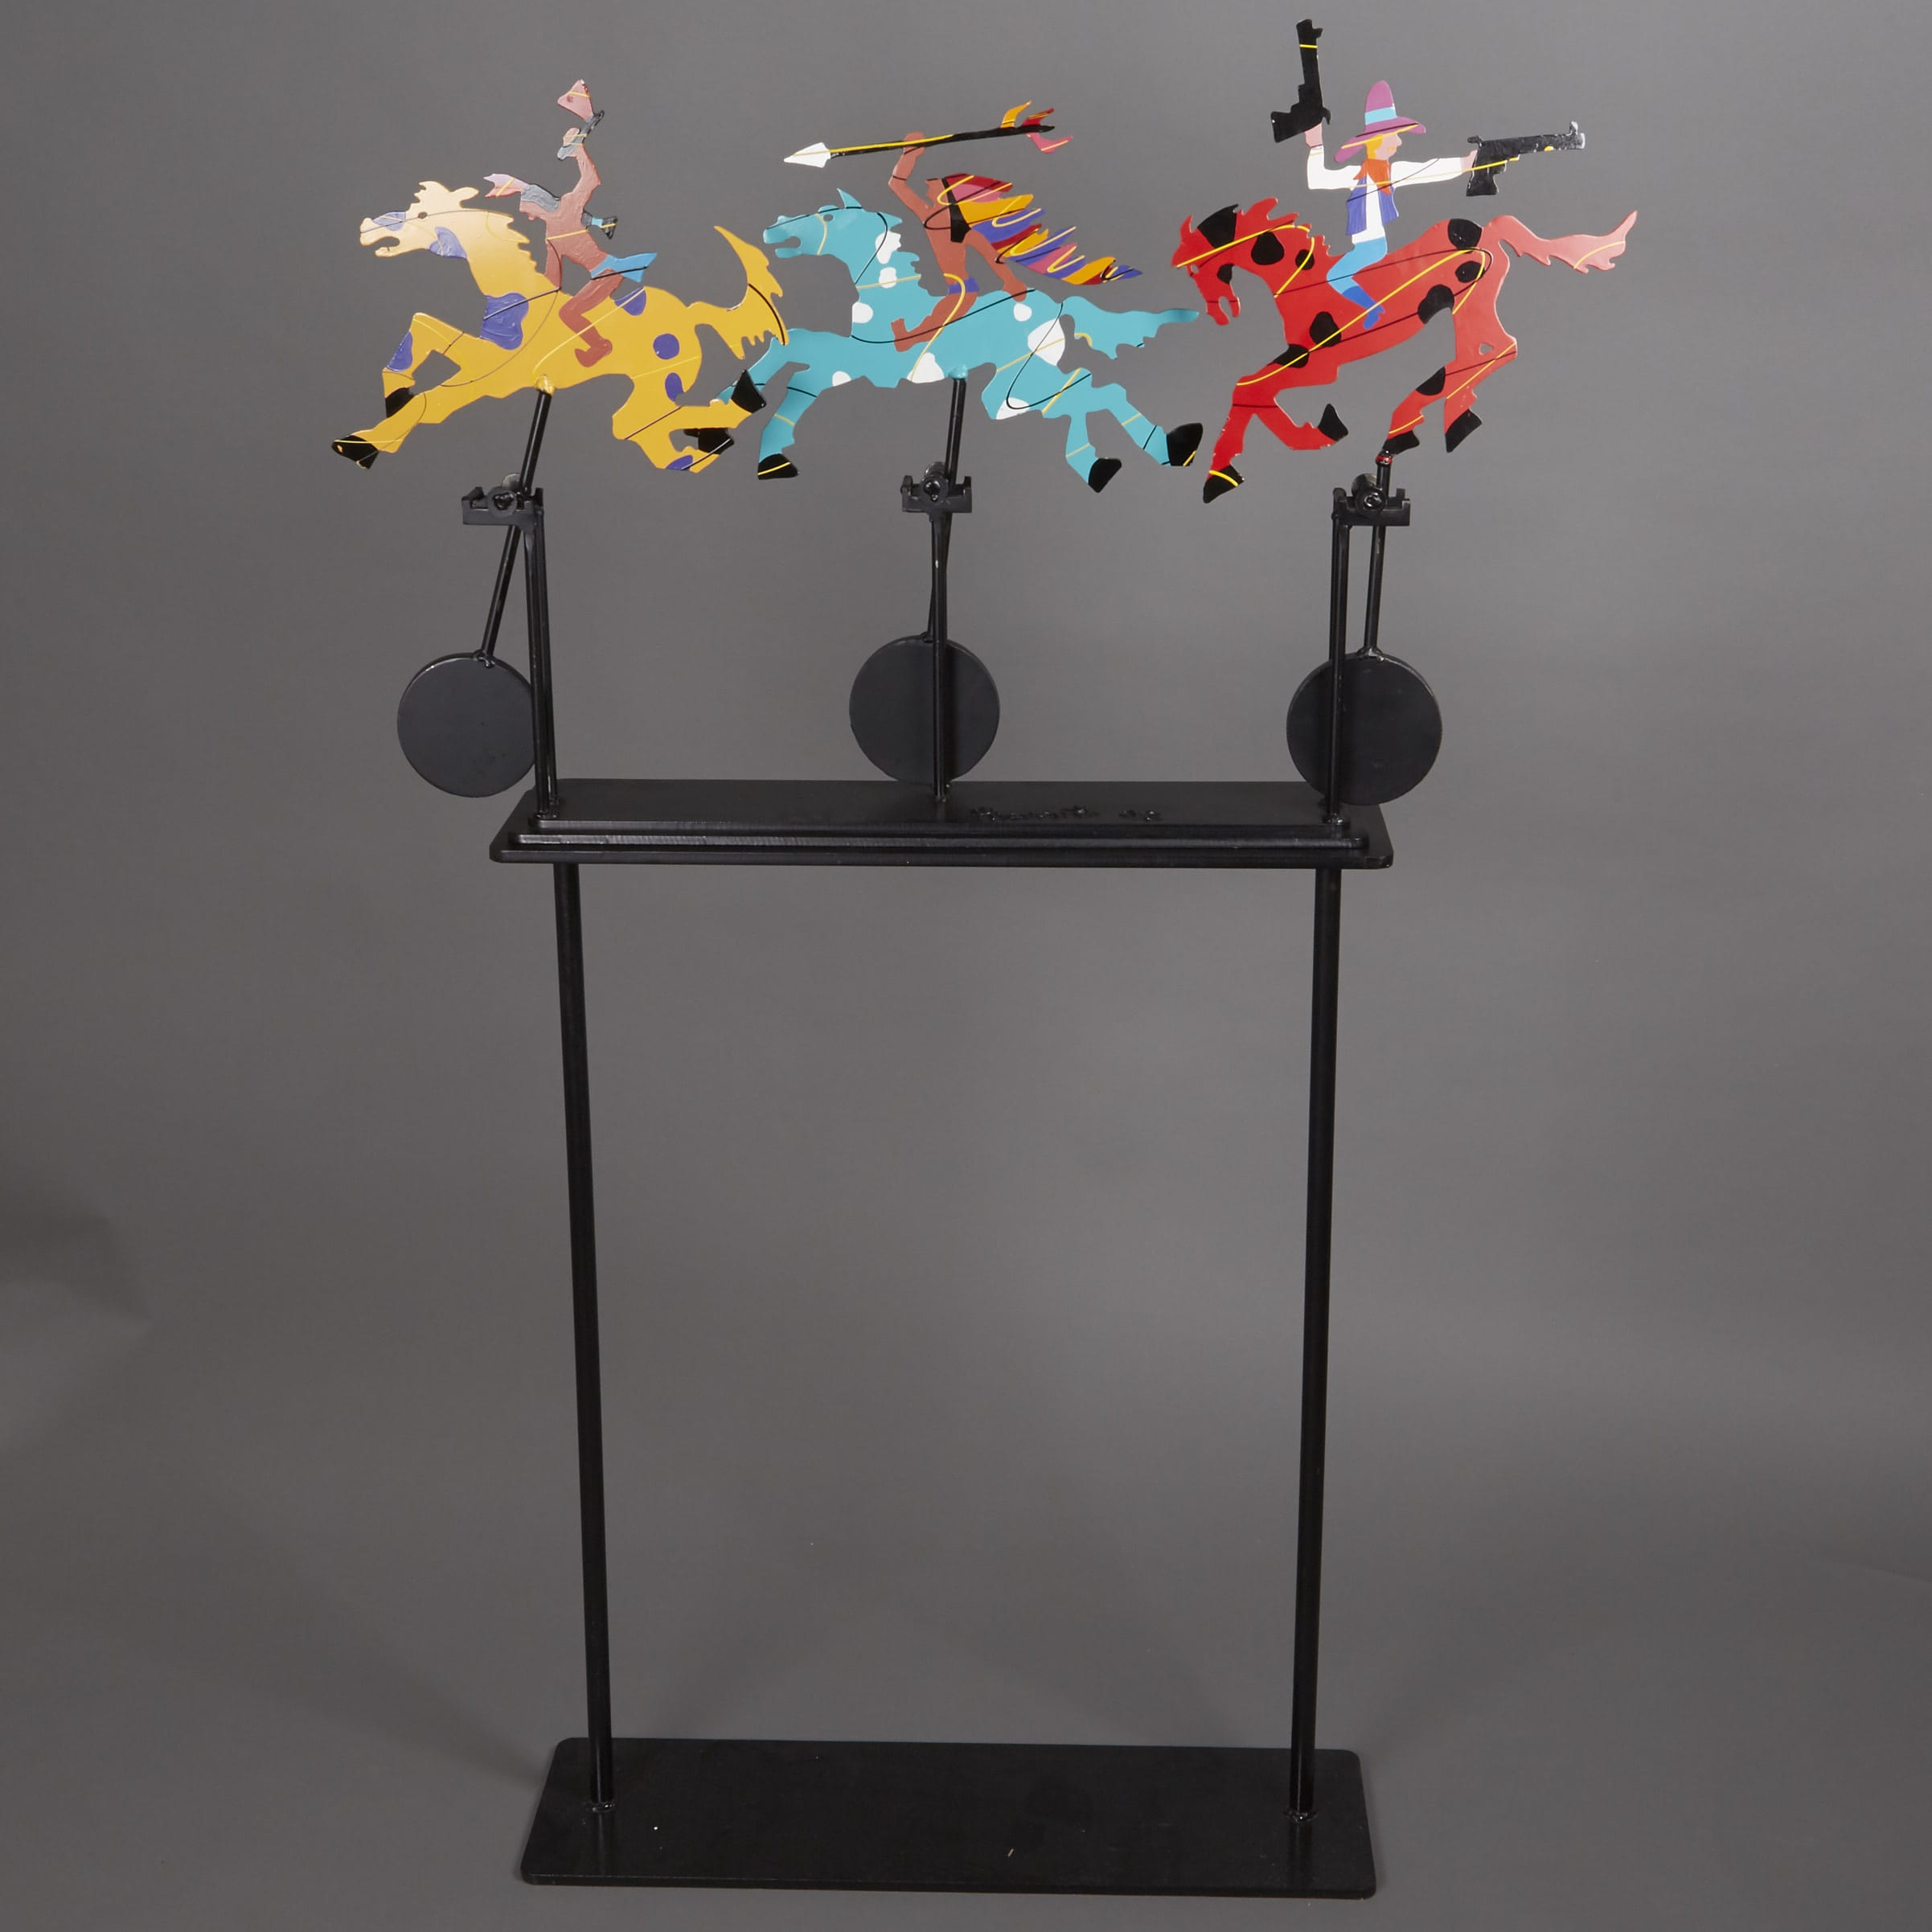 Lot 159: Frederick Prescott Kinetic Metal Sculpture